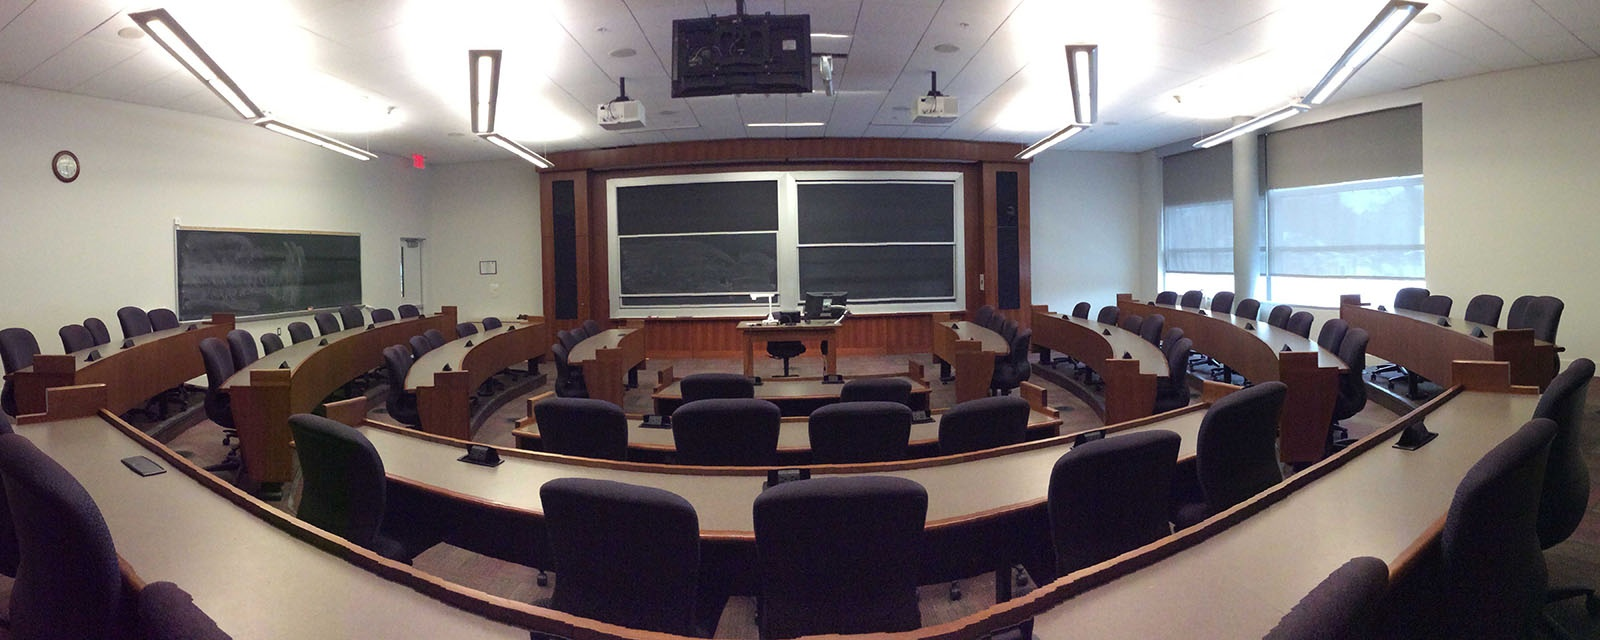 Panorama SOM 204 from back of room, stadium seating, moveable chairs, teaching station in front center